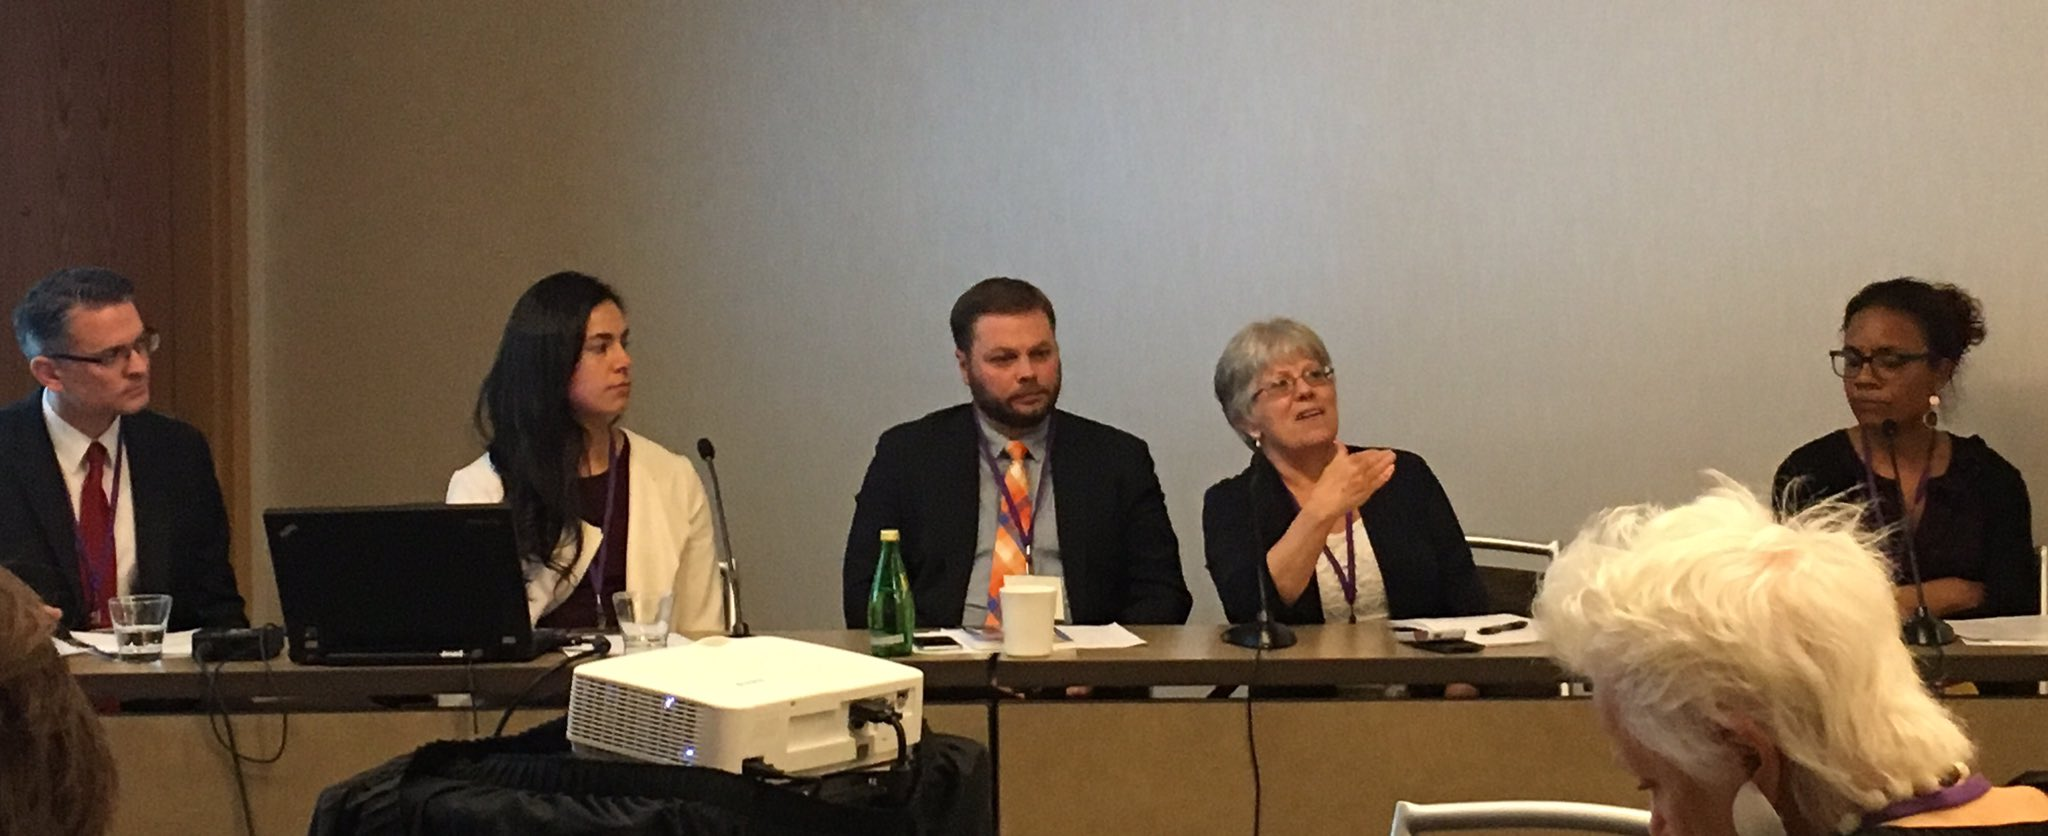 Panelists on School Readiness & Parent Success all agree: parents are most impt first teacher #GLRWeek https://t.co/cgDe5pZn1k